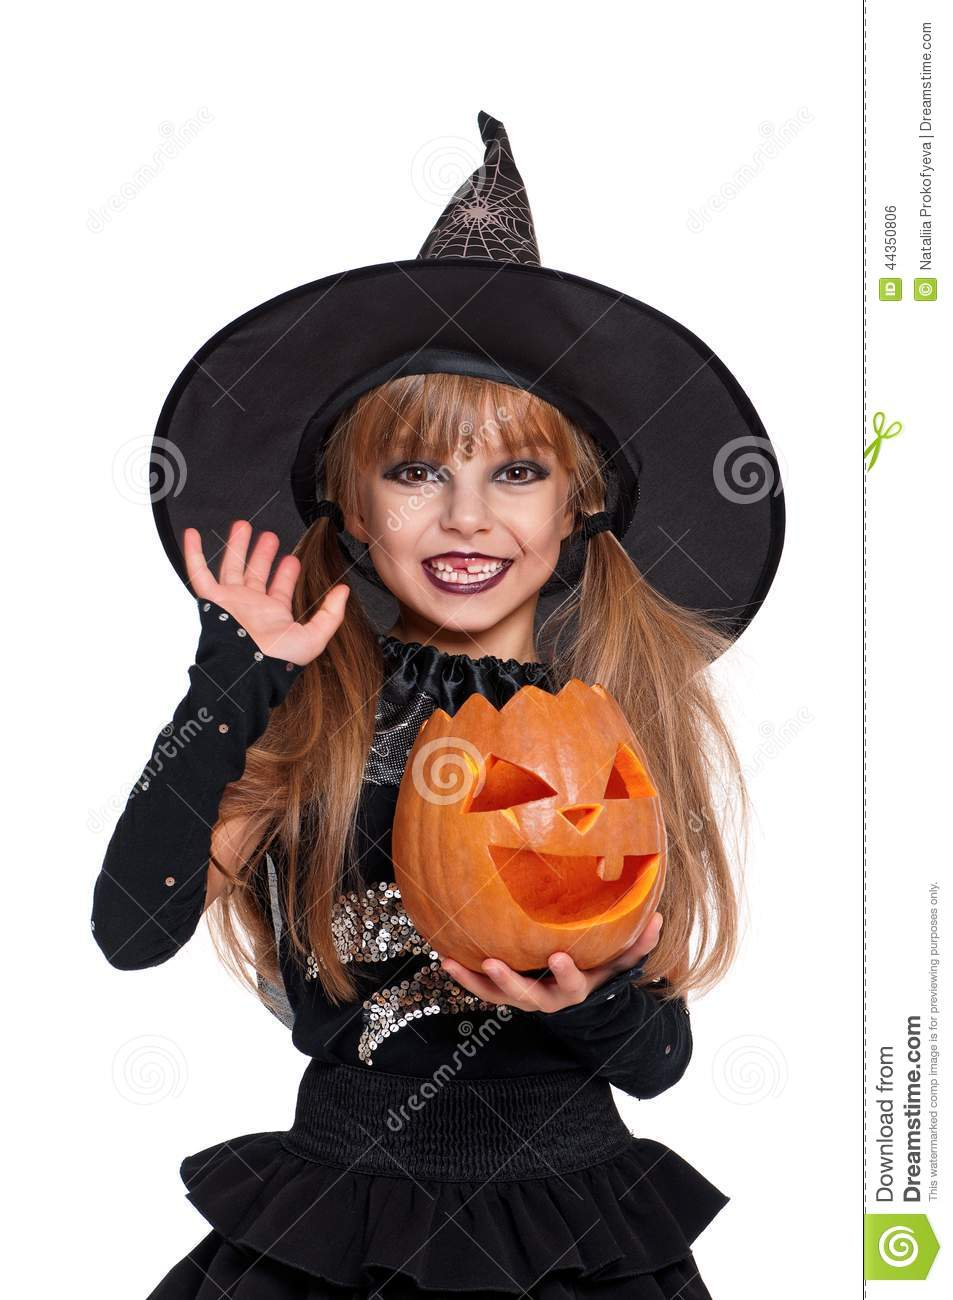 Youth girl halloween costumes - Costume halloween fille ...